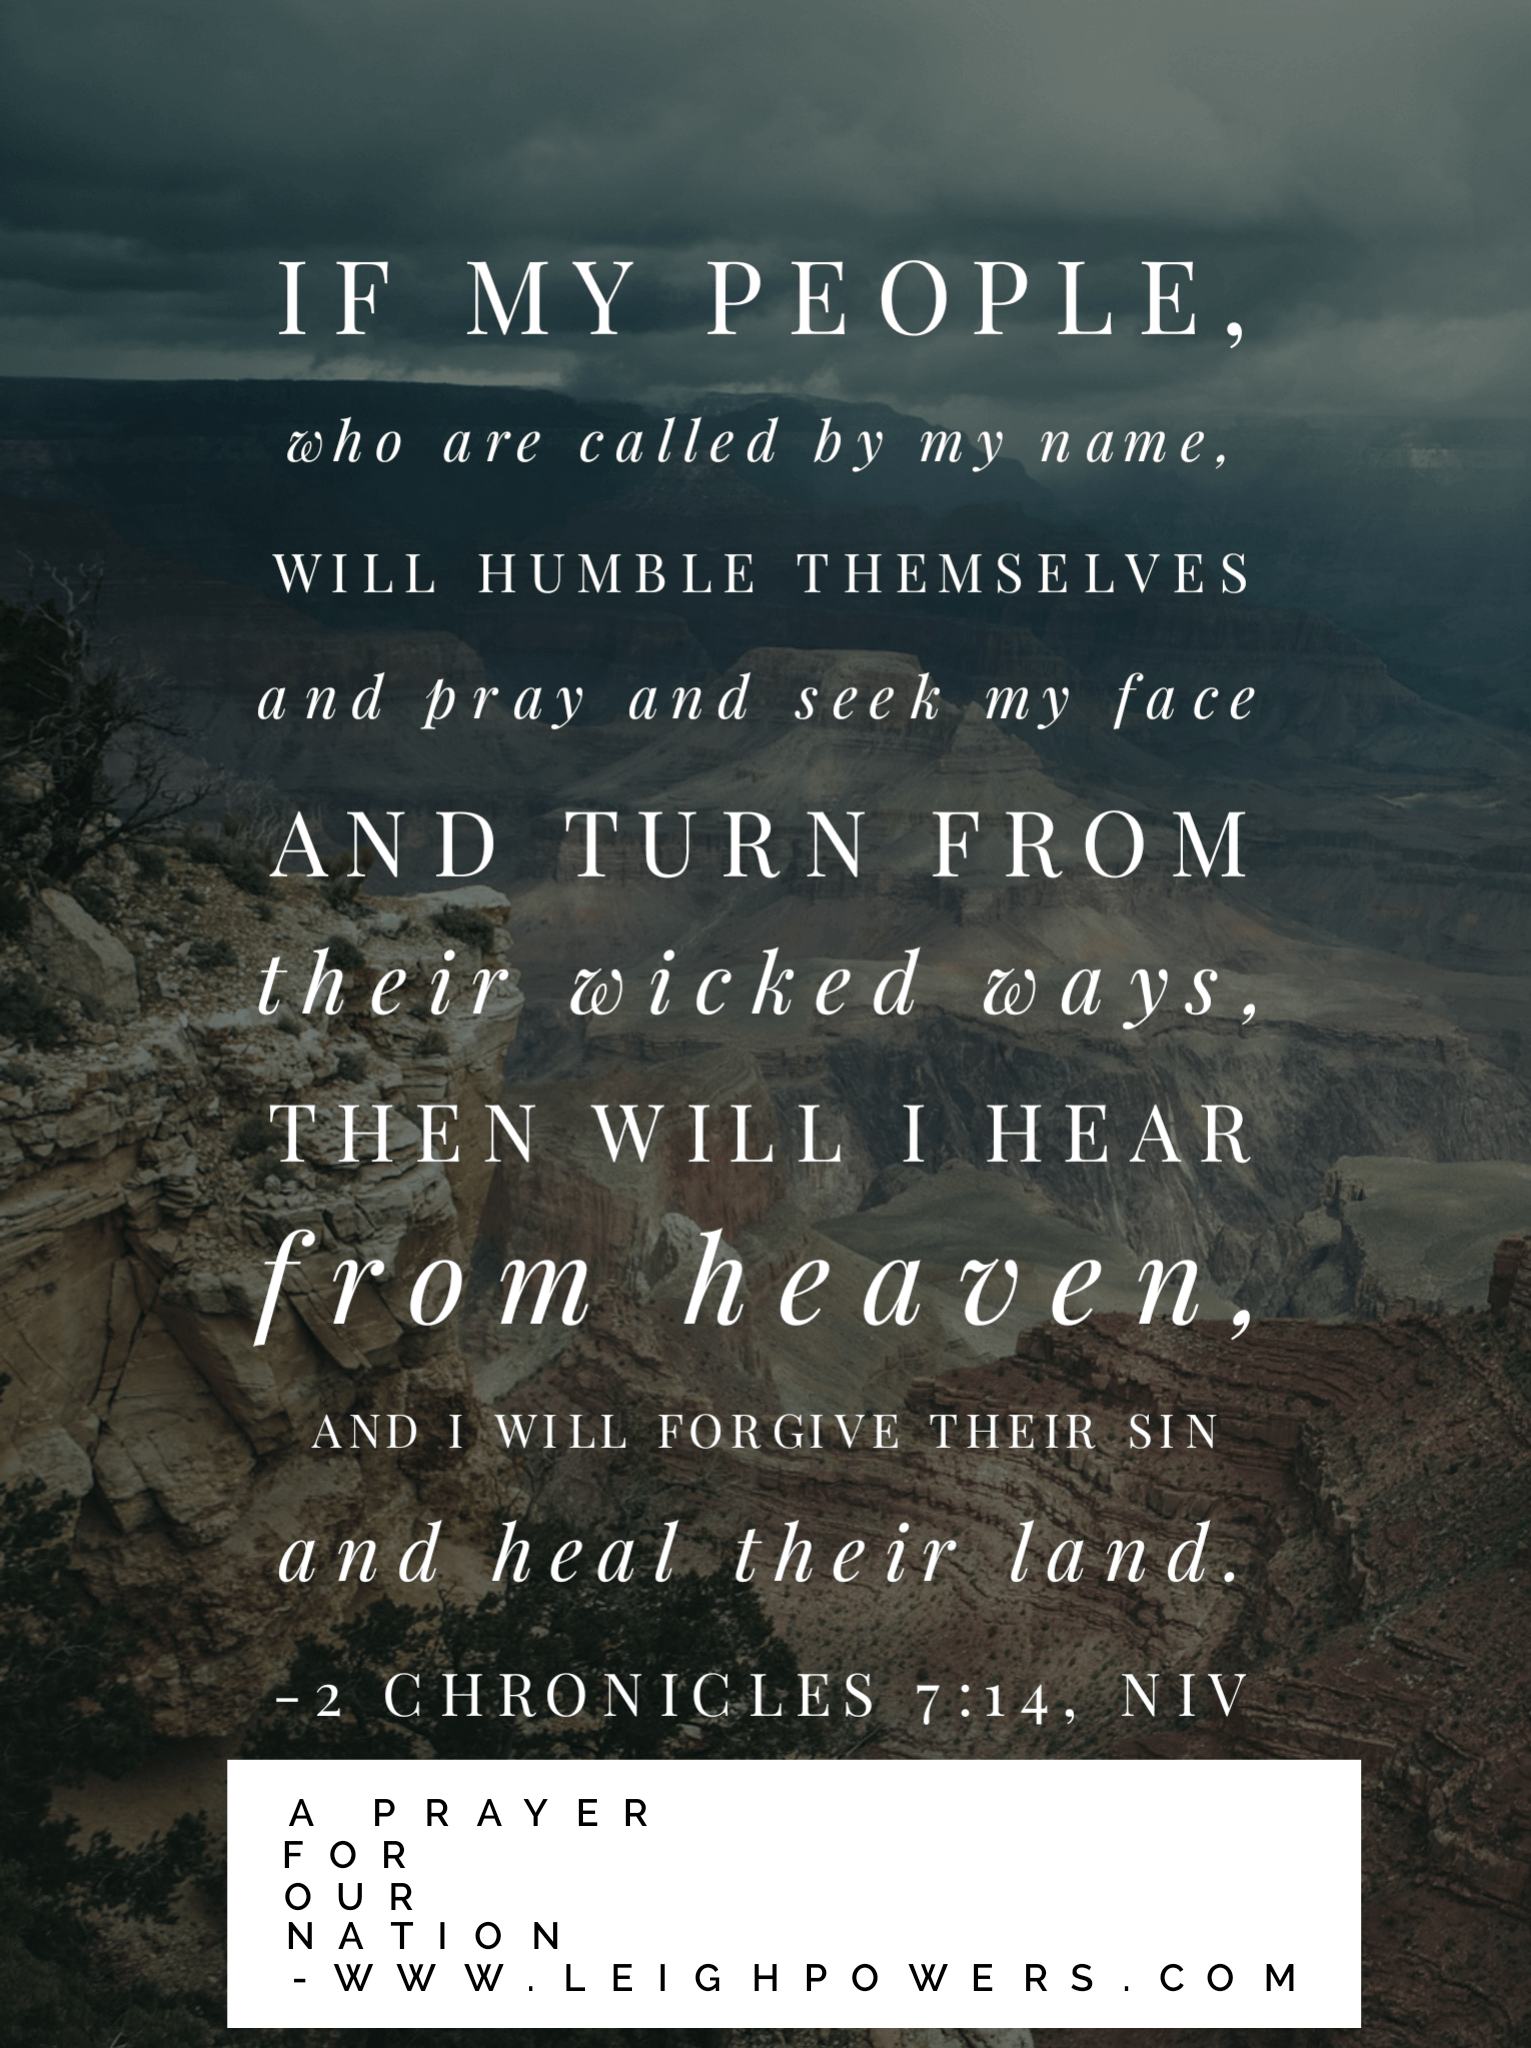 A Prayer for Our Nation.